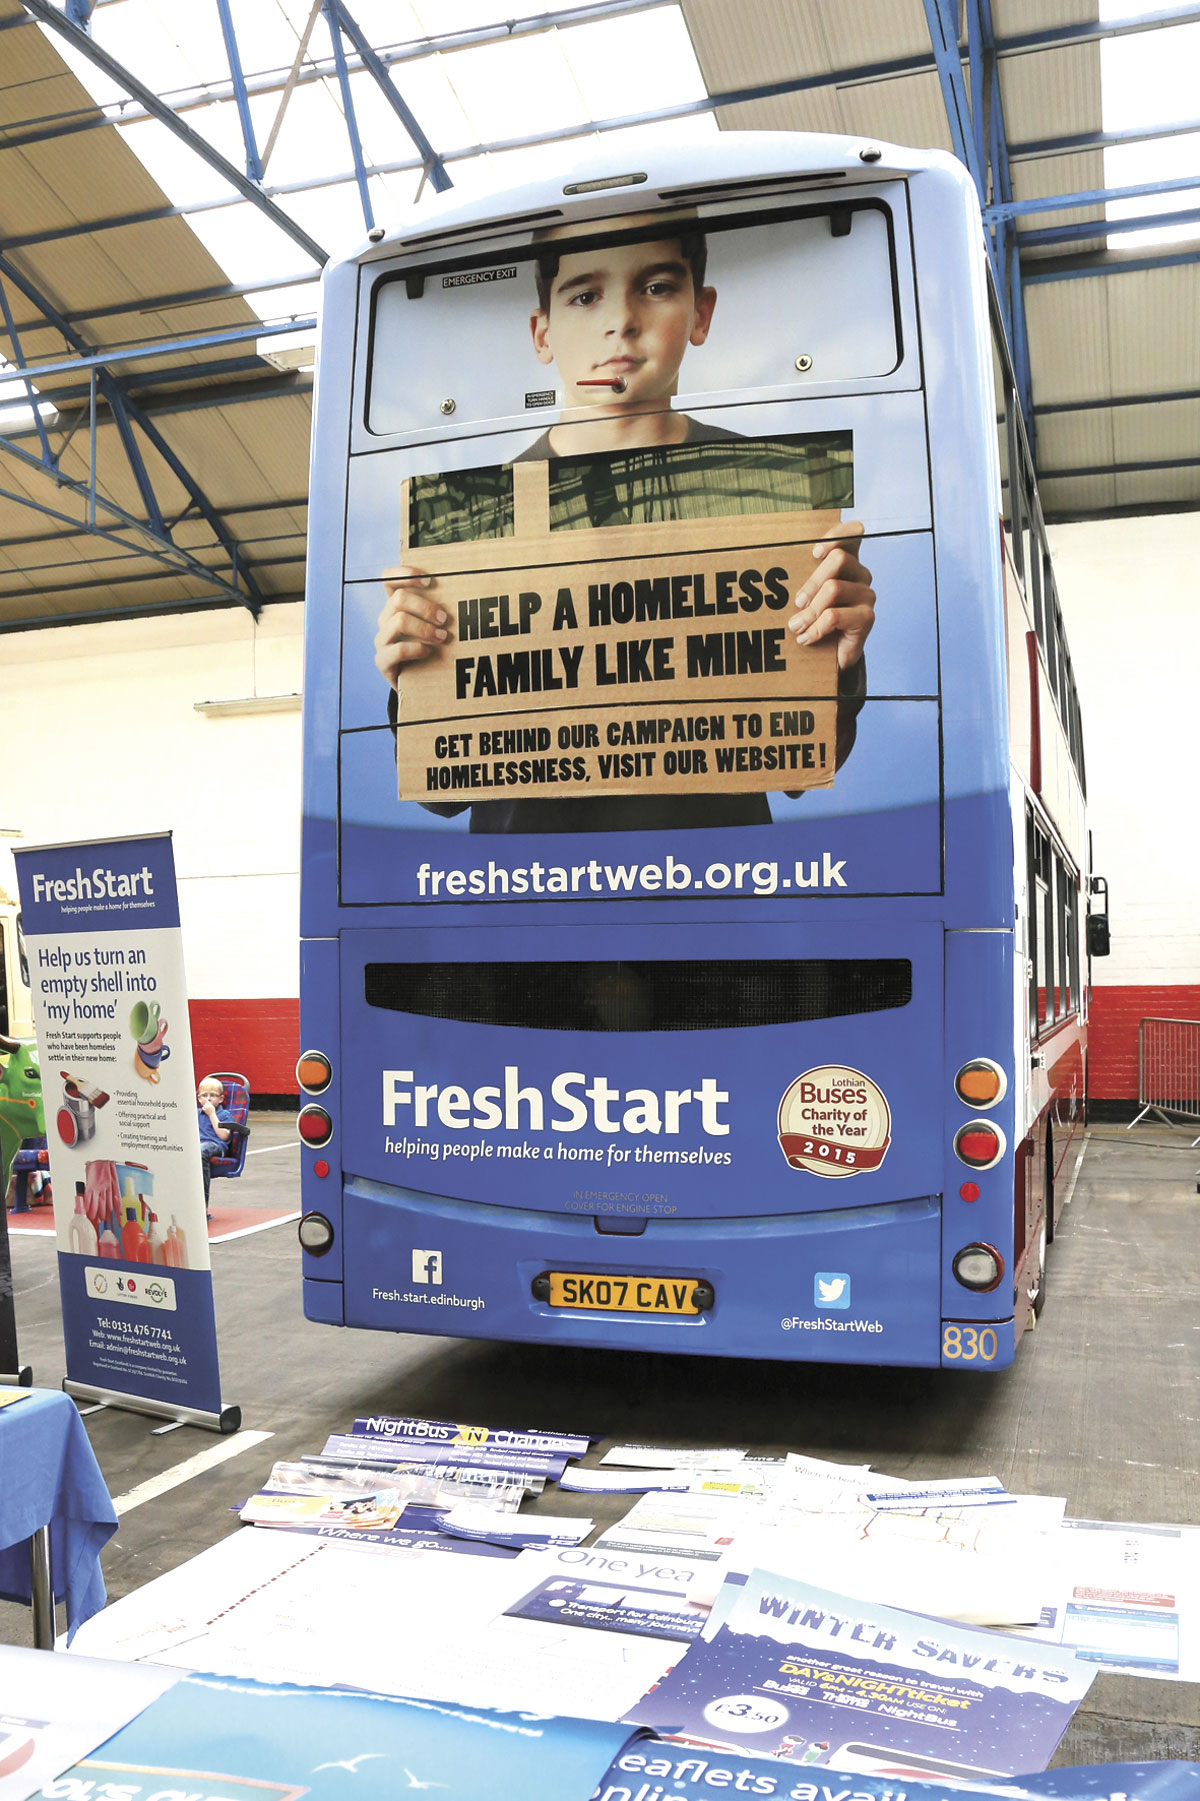 Lothian's chosen charity, Fresh Start, features on the rear of a Volvo Gemini